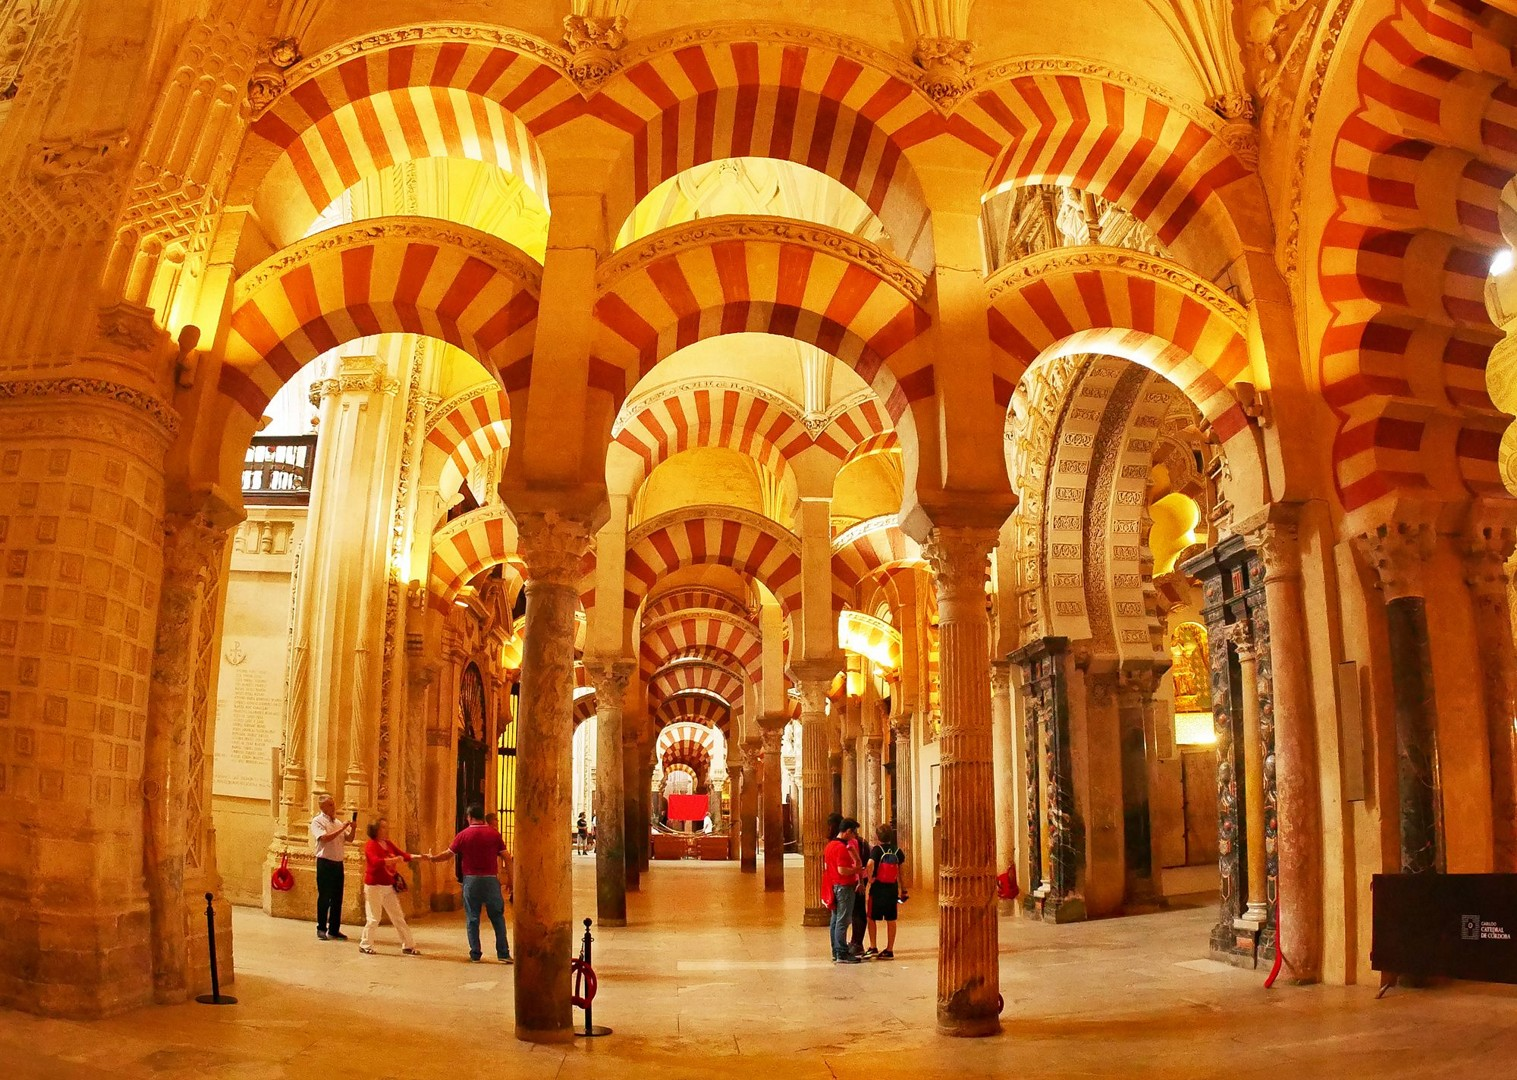 mezquita-guided-leisure-cycling-holiday-southern-spain-granada-to-seville.jpg - Spain - Granada to Seville - Leisure Cycling